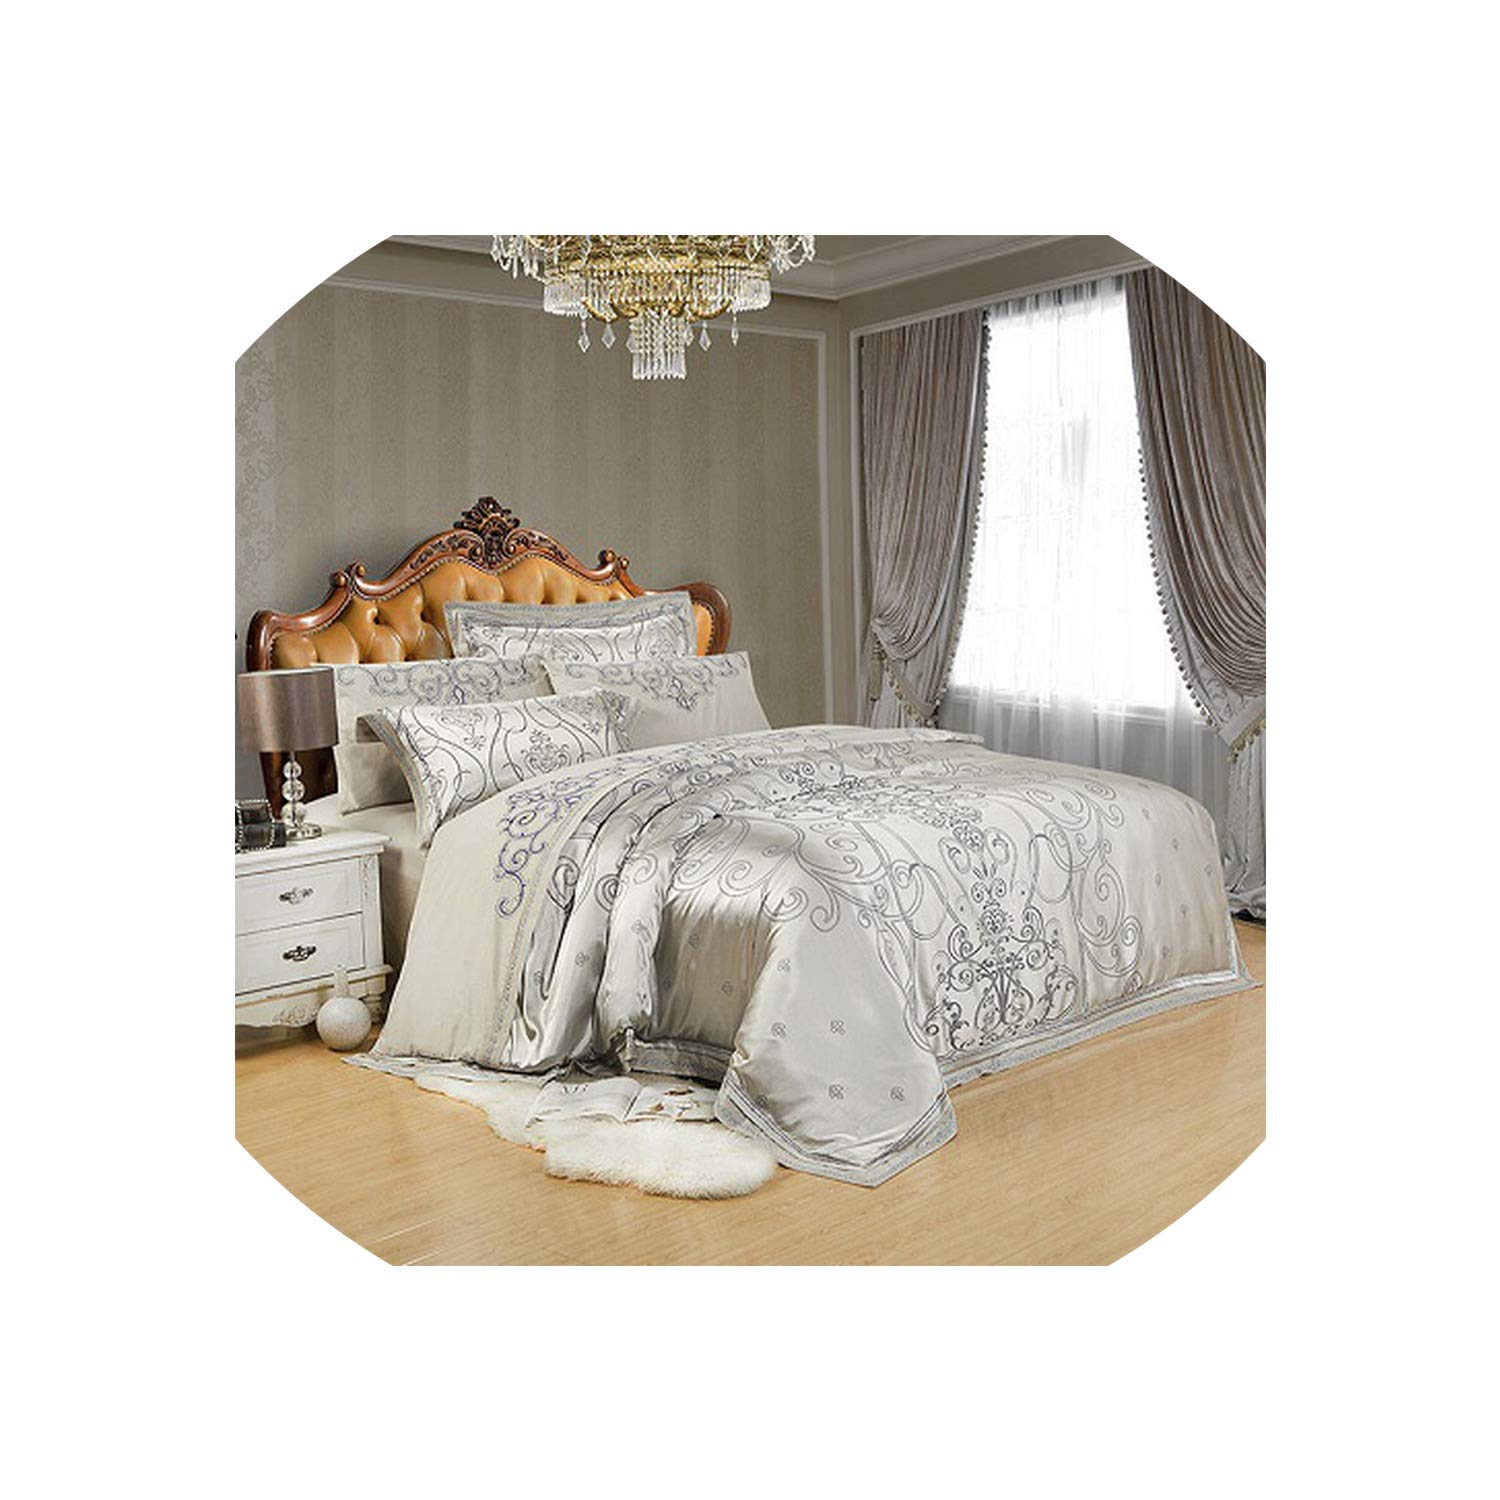 Silver Gold Luxury Silk Satin Jacquard Duvet Cover Bedding Set Queen King Size Embroidery Bed Set Bed Sheet/Fitted Sheet Set,Color 2,King 4Pcs,Fitted Sheet Style